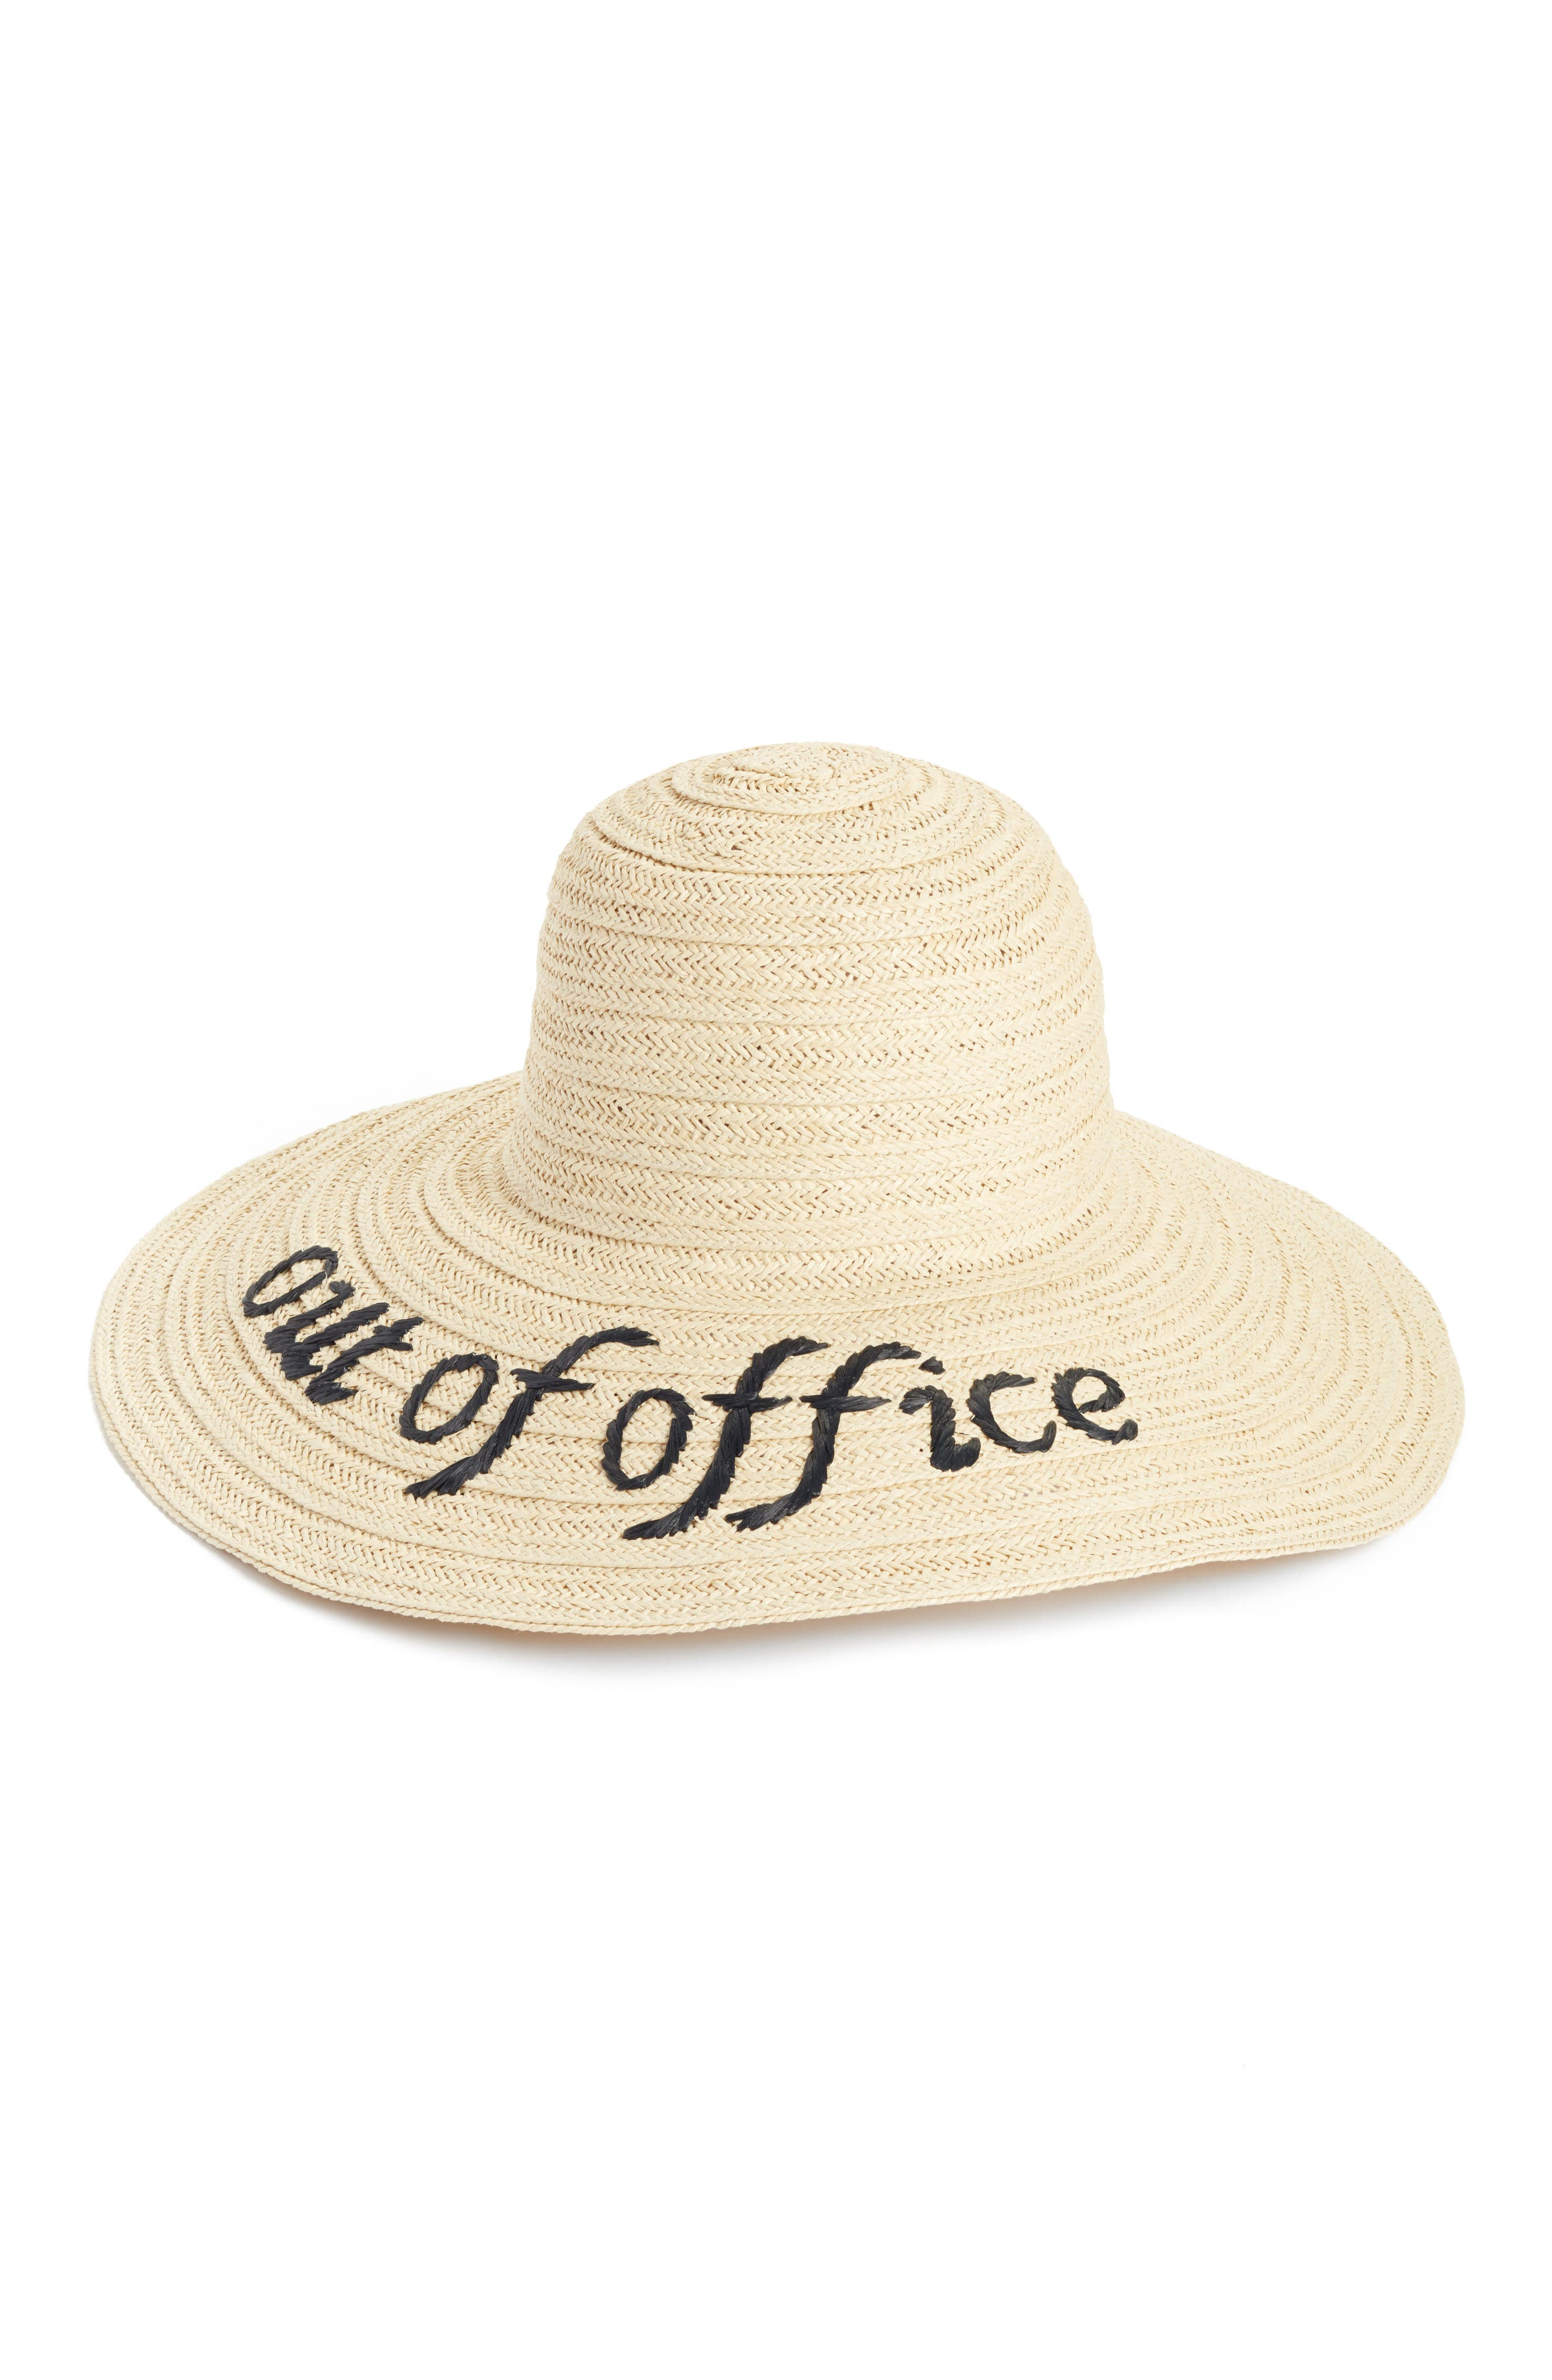 Wordplay Floppy Straw Sun Hat,                             Main thumbnail 1, color,                             001